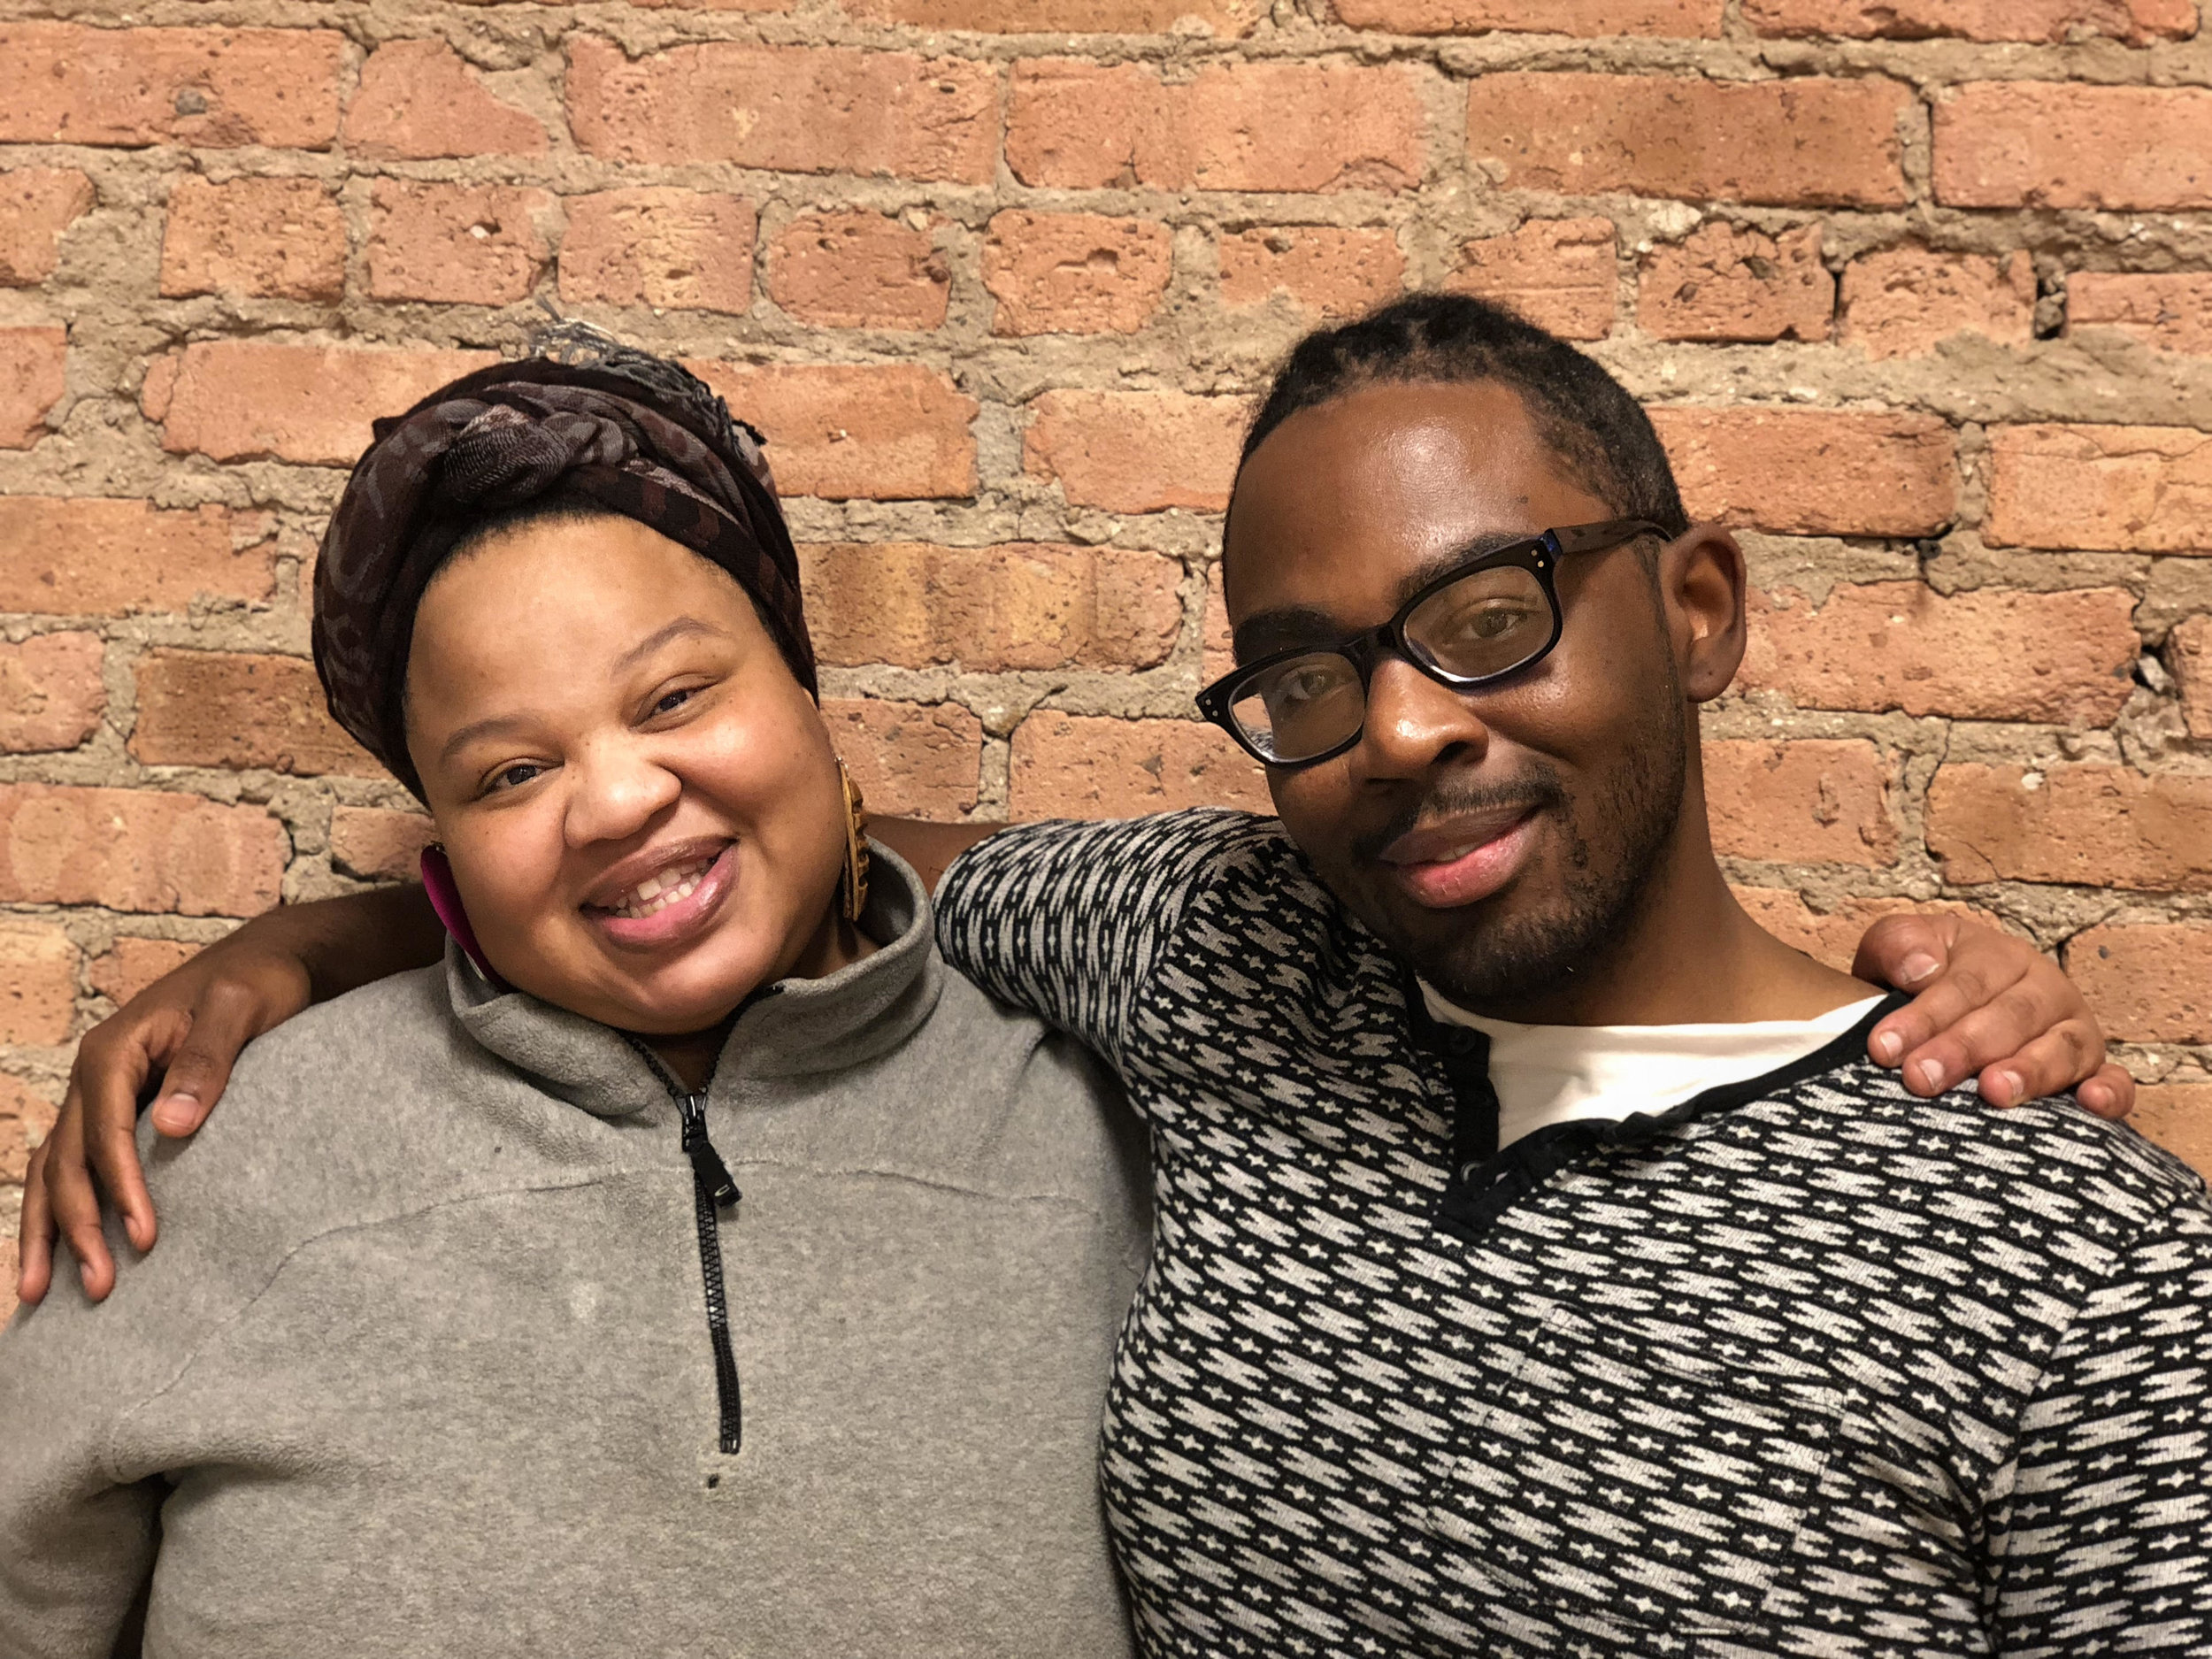 Angel Bat Dawid and Julian Otis, organizers of Self Care = Resistance